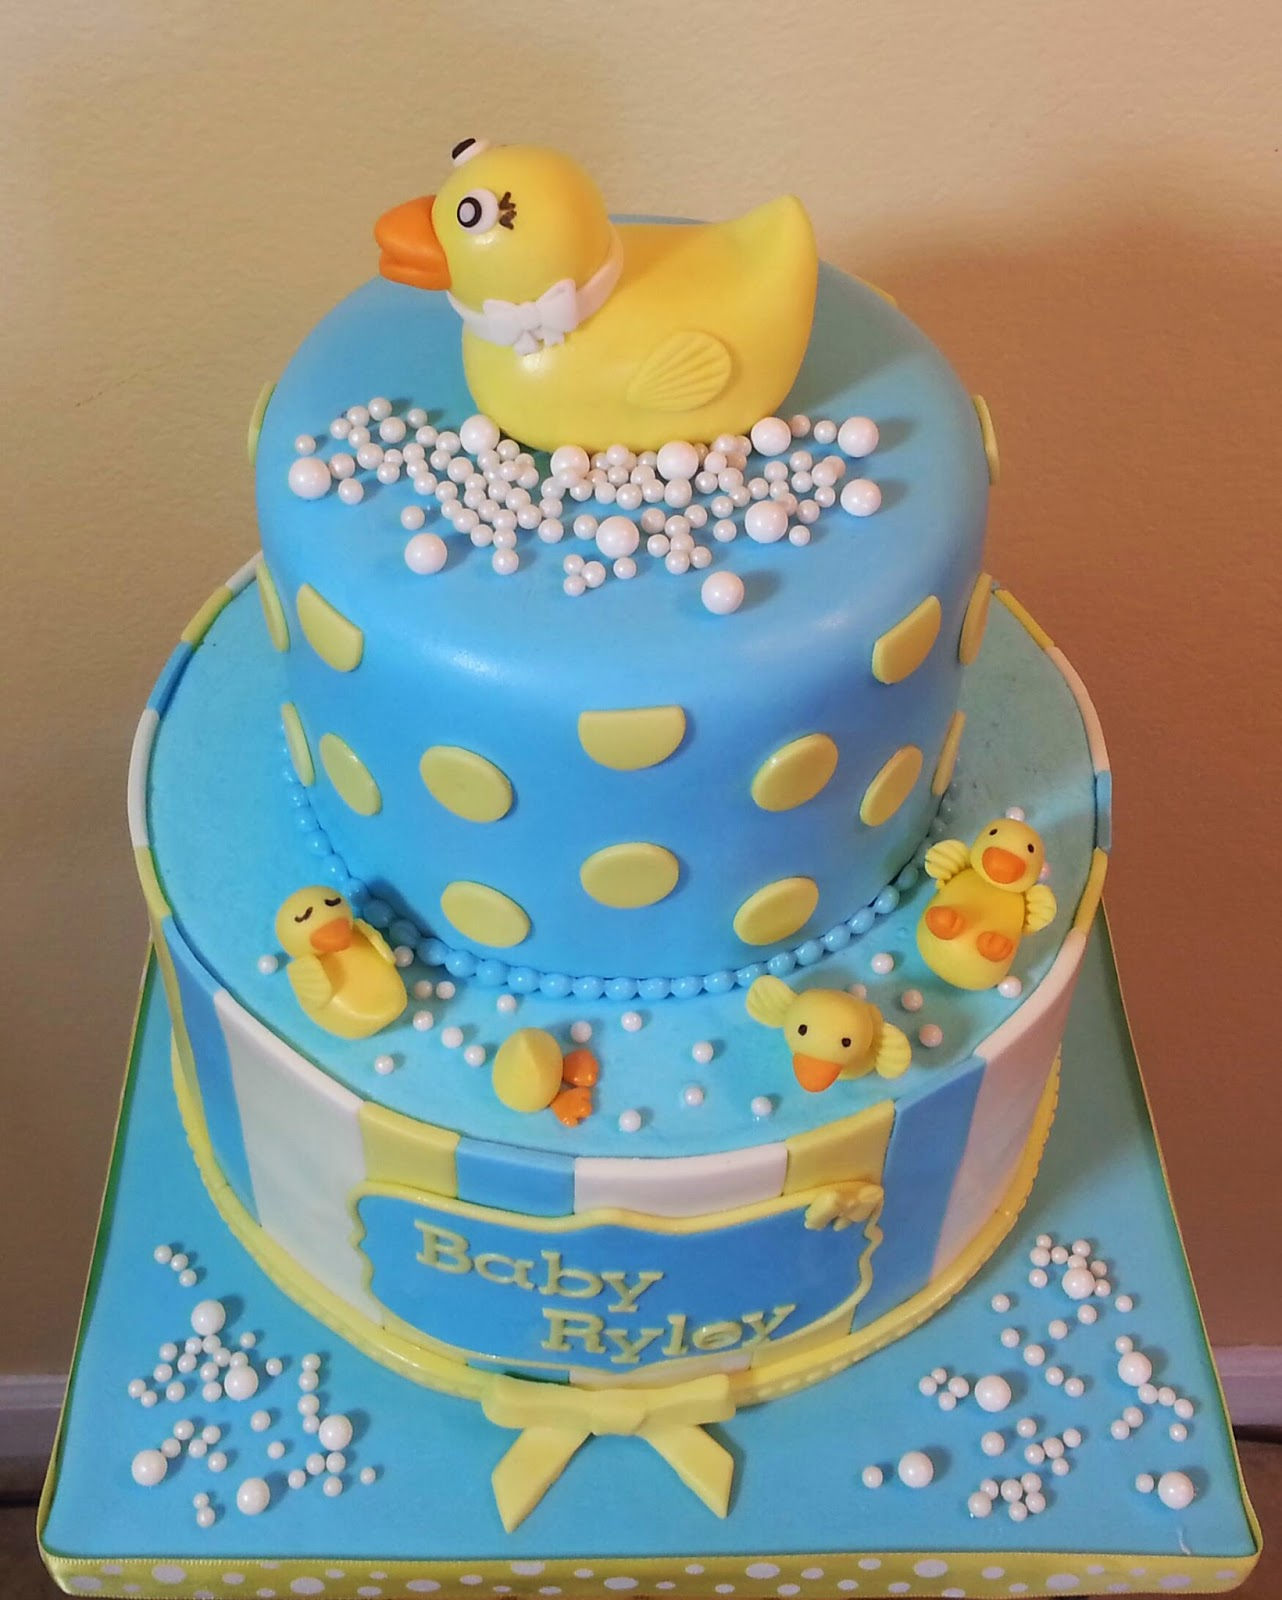 Cake Decorating Pueblo Co : Cake & Dreams: Rubber Ducky Baby Shower Cake